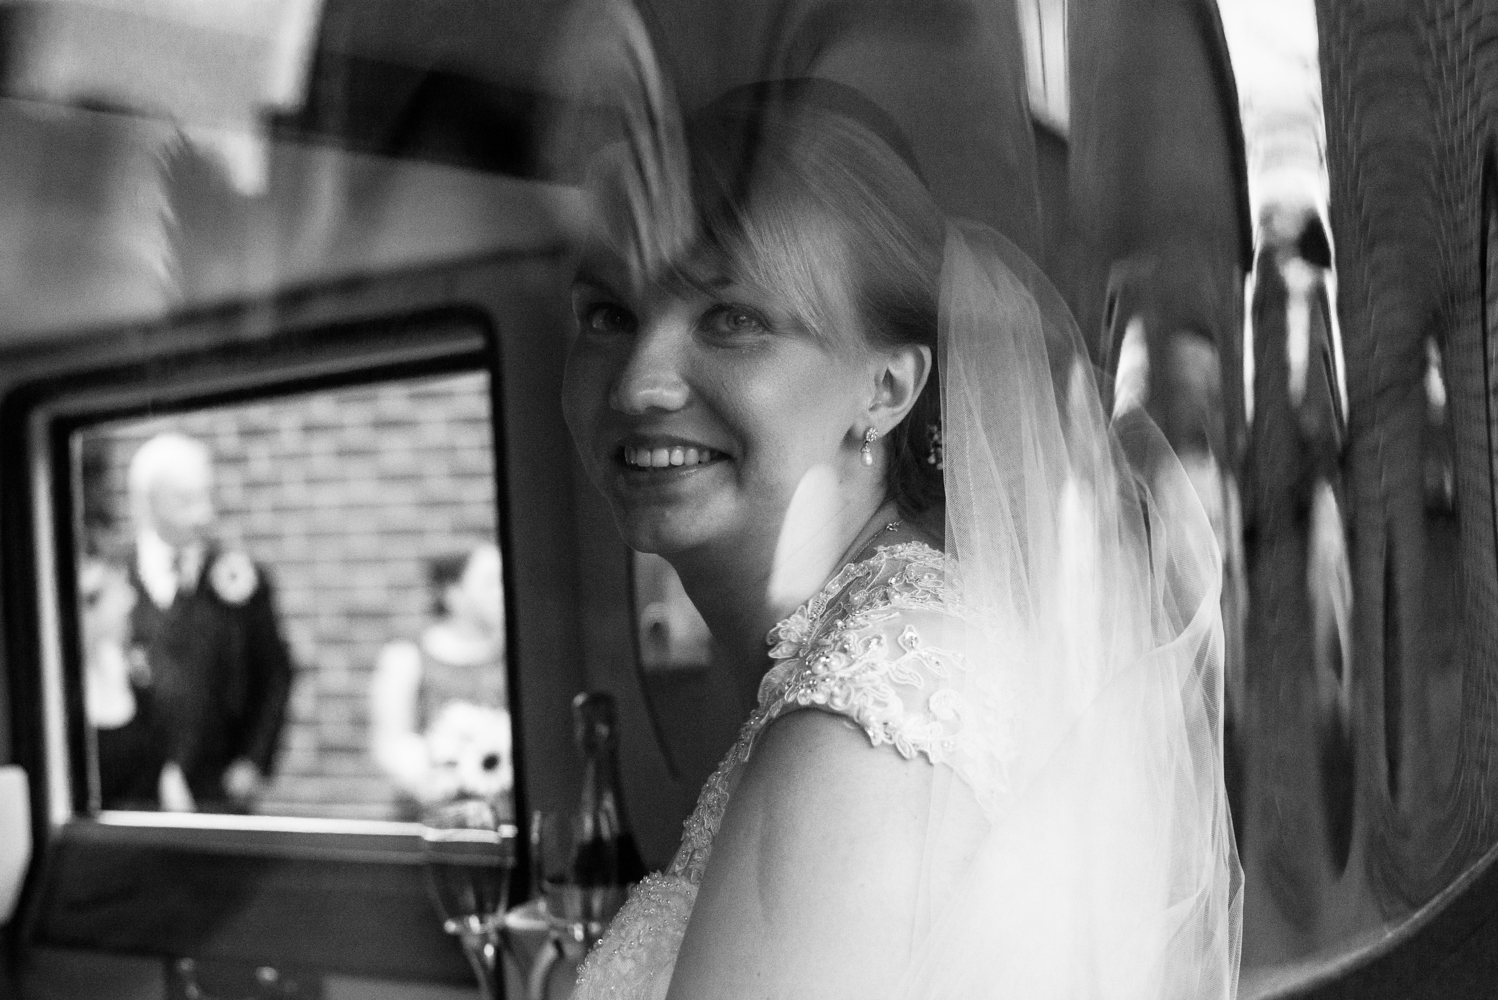 Black and white images of the bride sitting in the back of the wedding car shot through a glass window